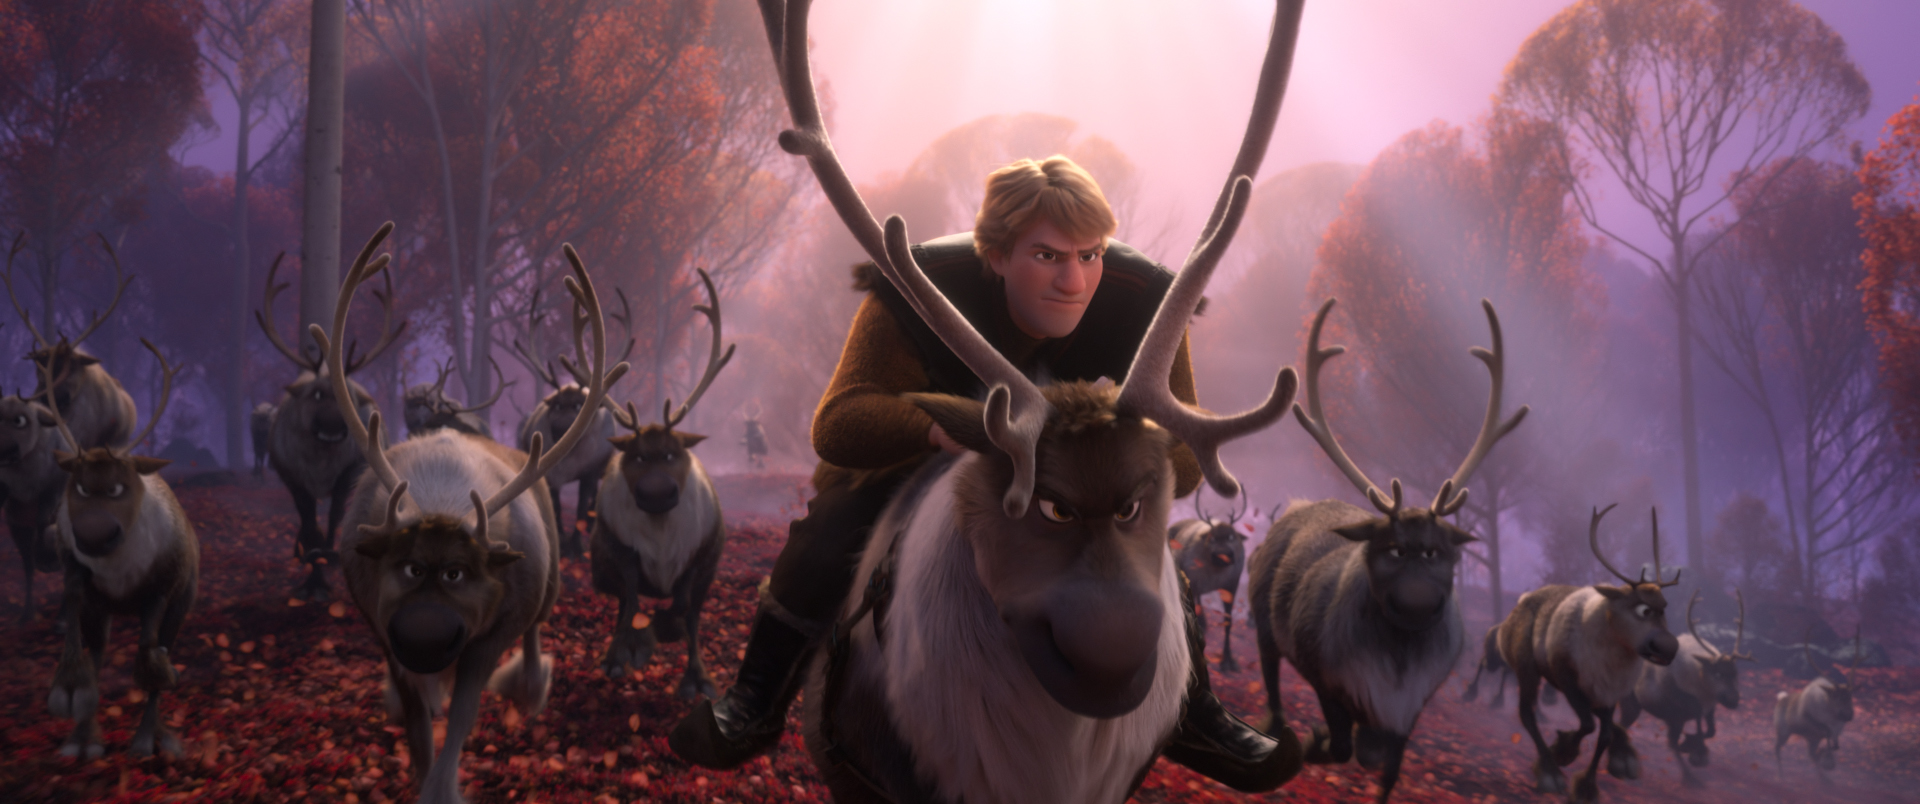 Kristoff's ballad song in Frozen 2 and movie review